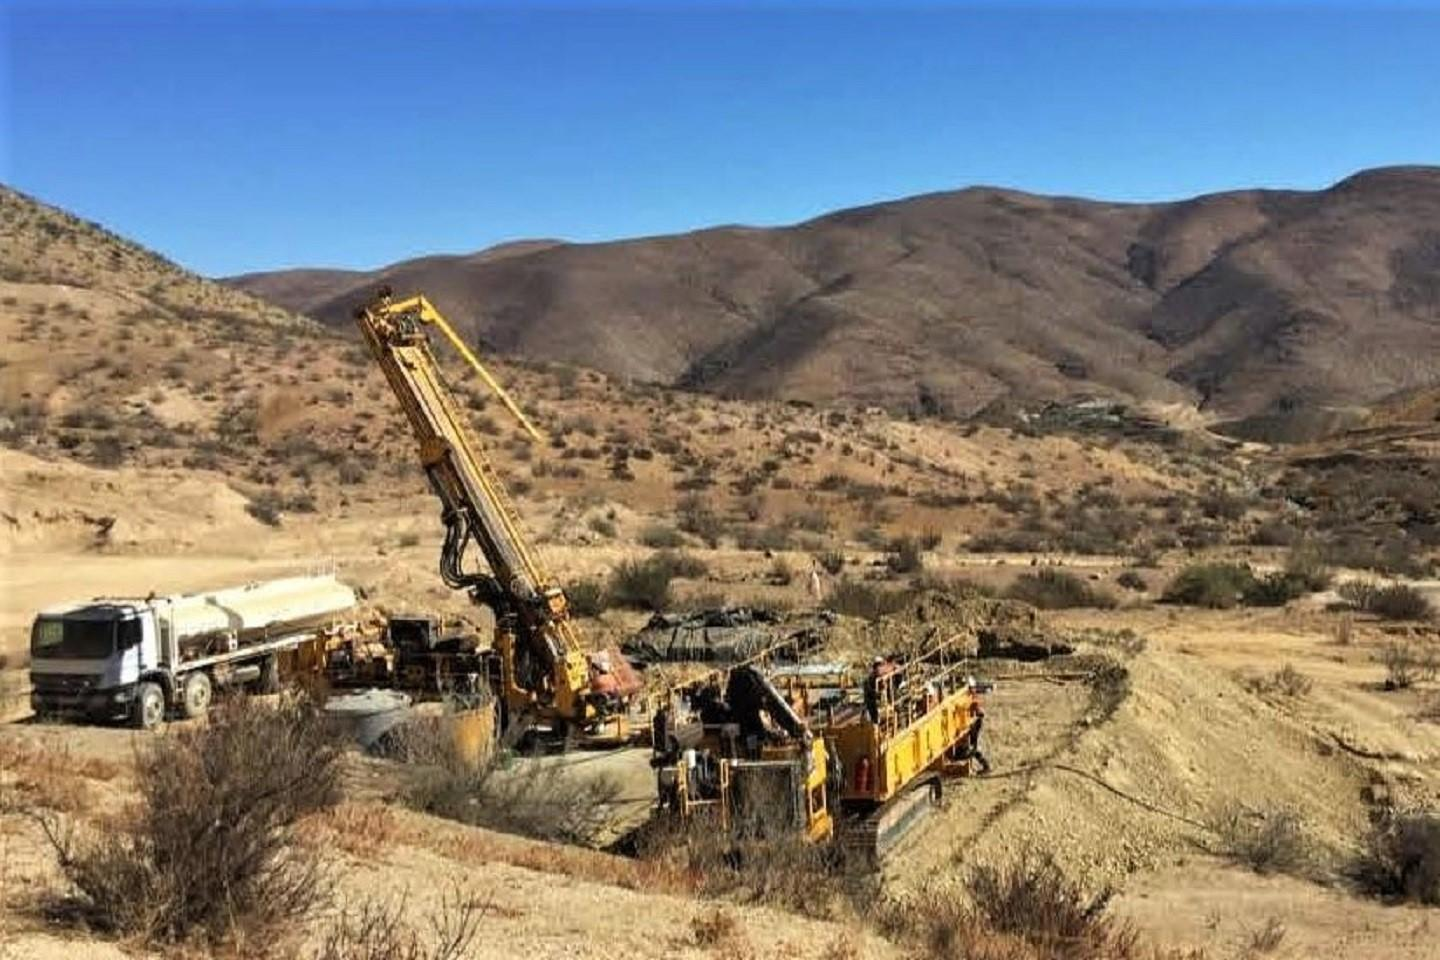 Hot Chili extends copper-gold core to 800m depth in Chile